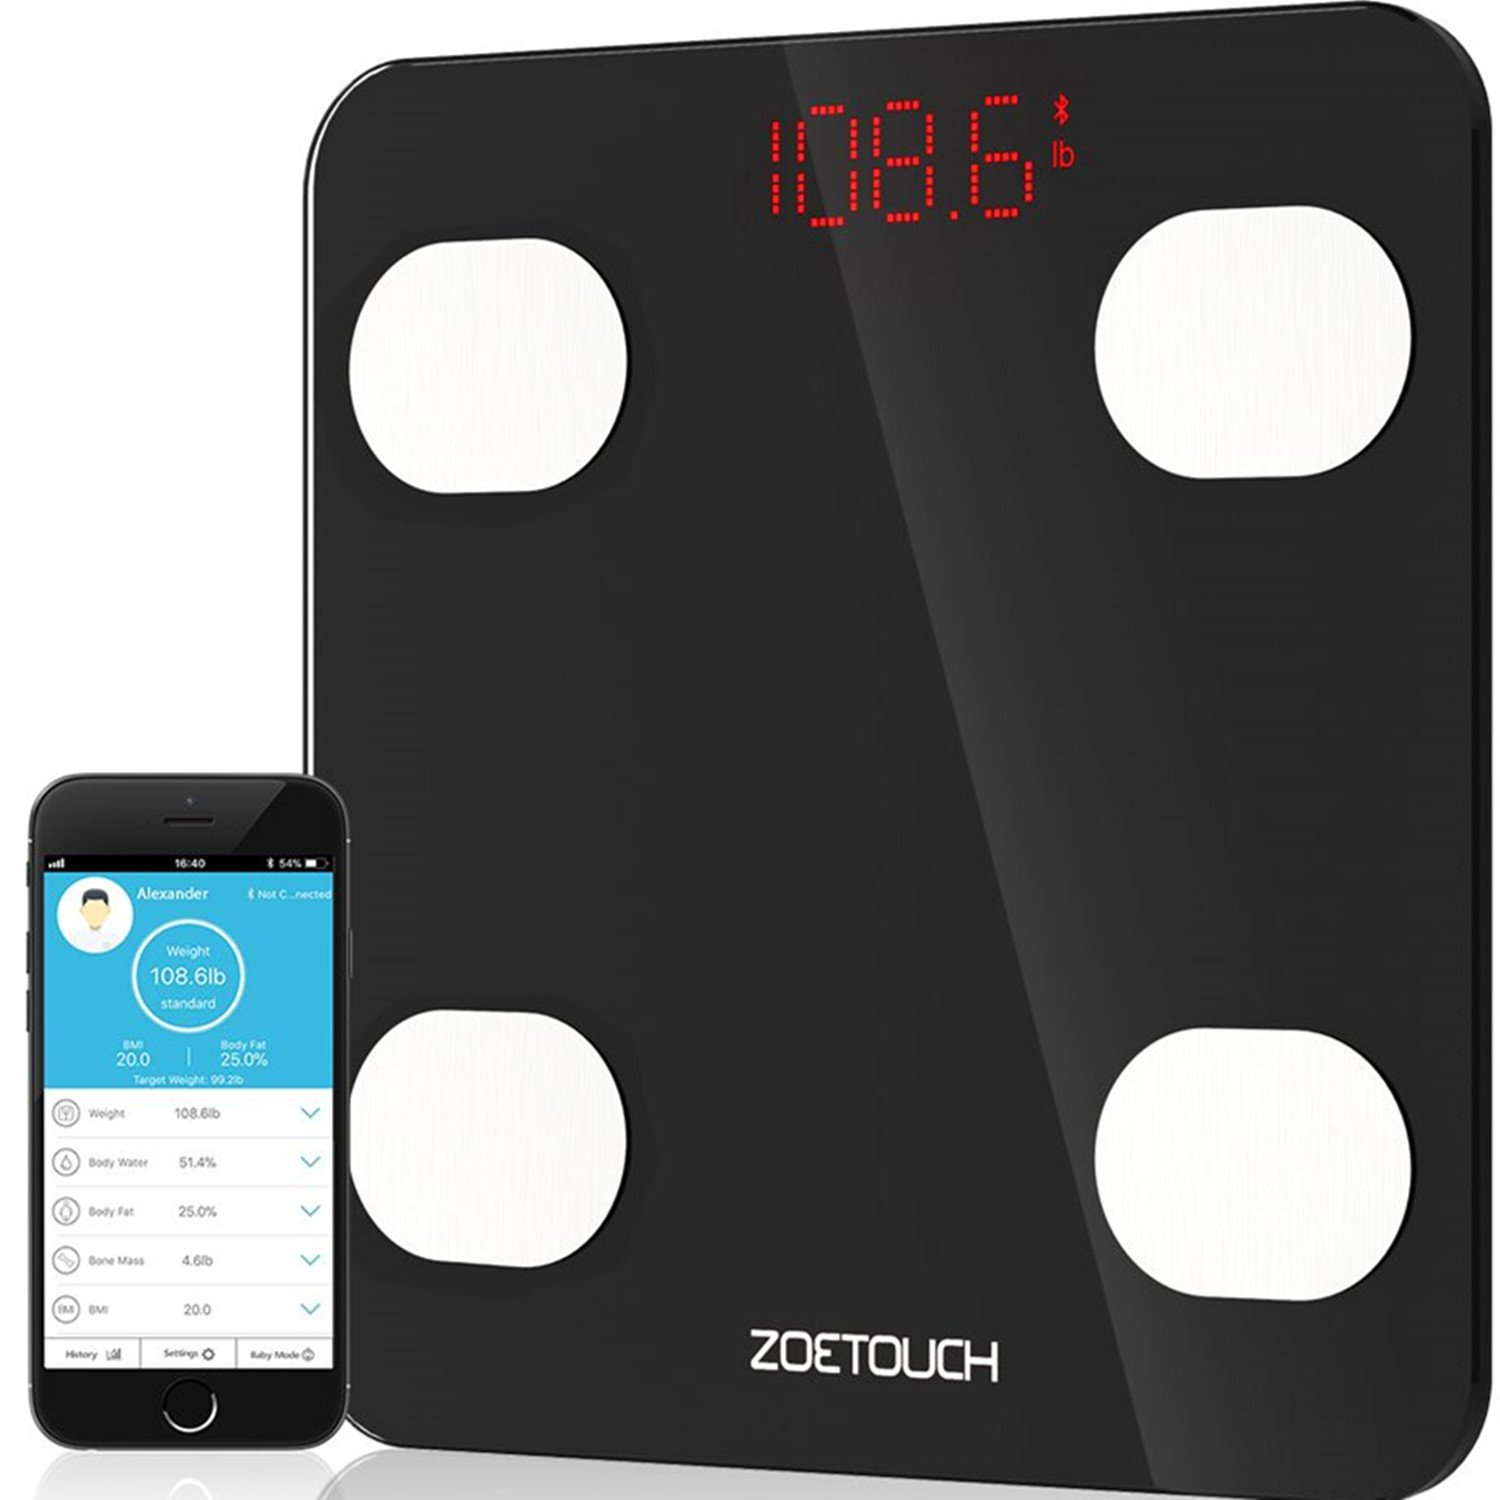 Bluetooth Body Fat Scale, ZOETOUCH Smart Digital Bathroom Weight Scale with iOS and Android APP Wireless Body Composition Analyzer Fitness Health Monitor Capacity Up to 180 kg /396 lbs, Black